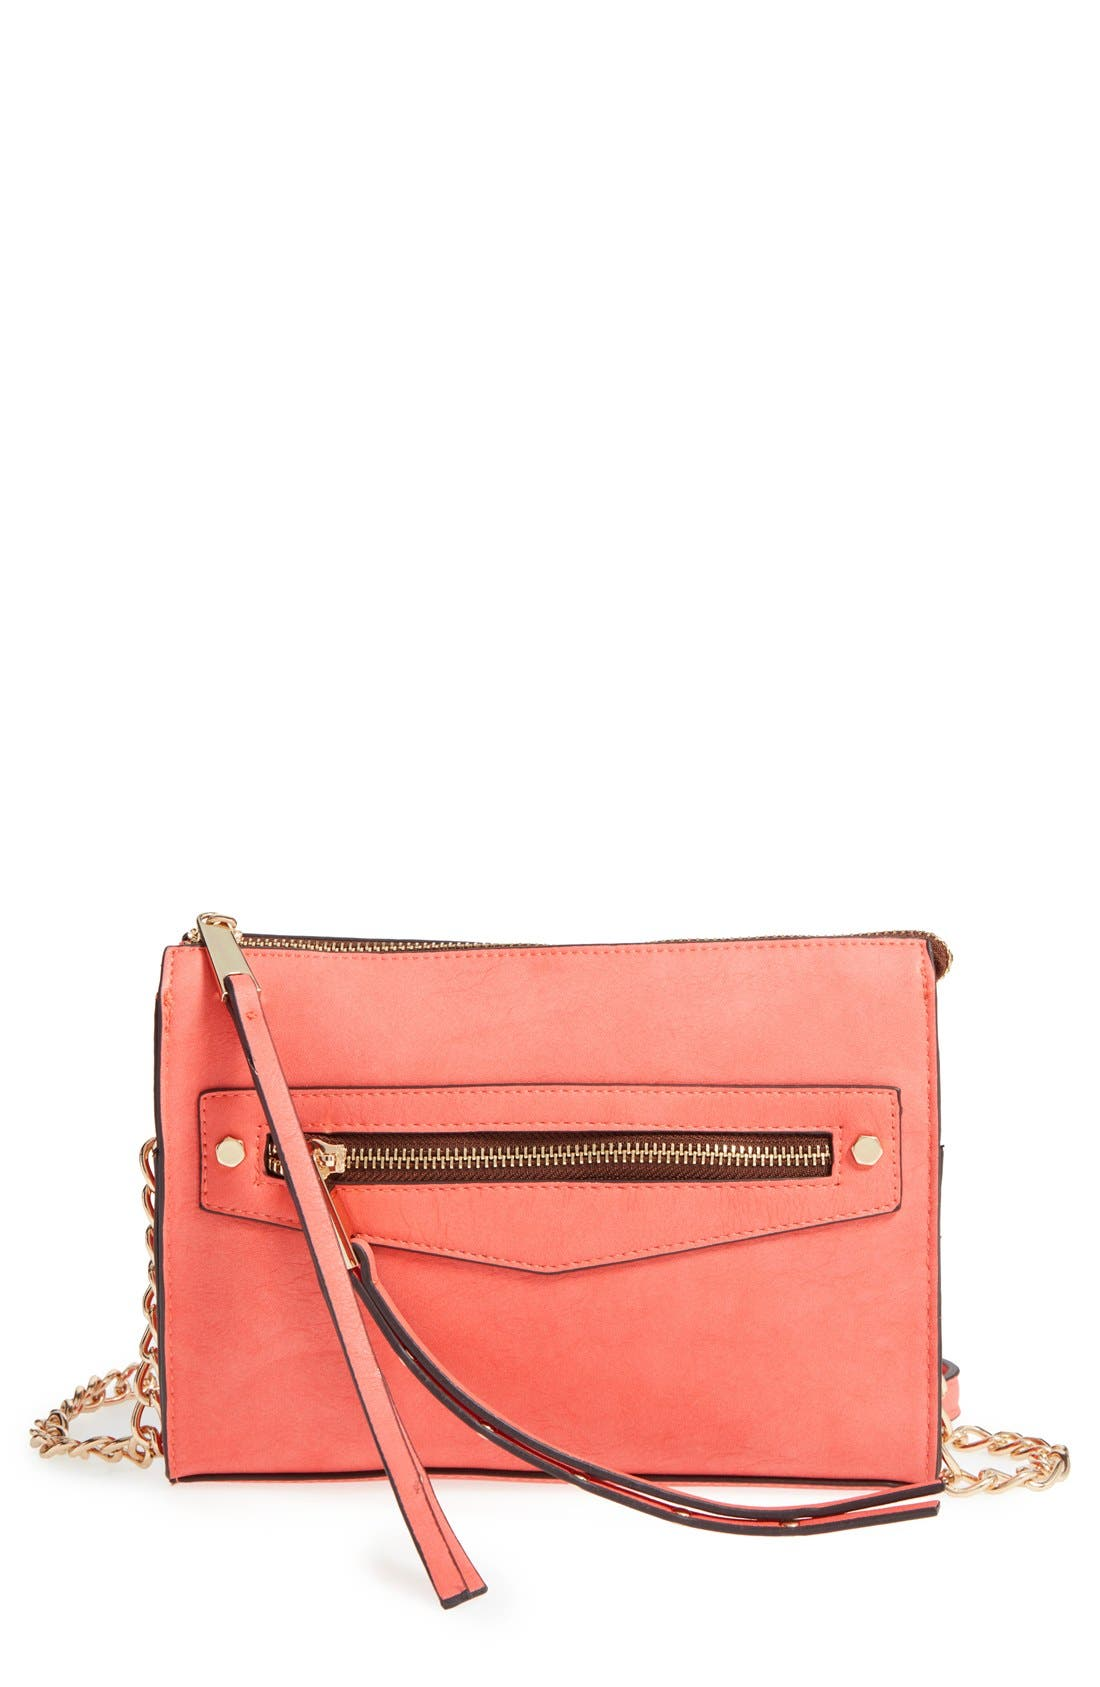 Alternate Image 1 Selected - Dolce Girl Stud Crossbody Bag